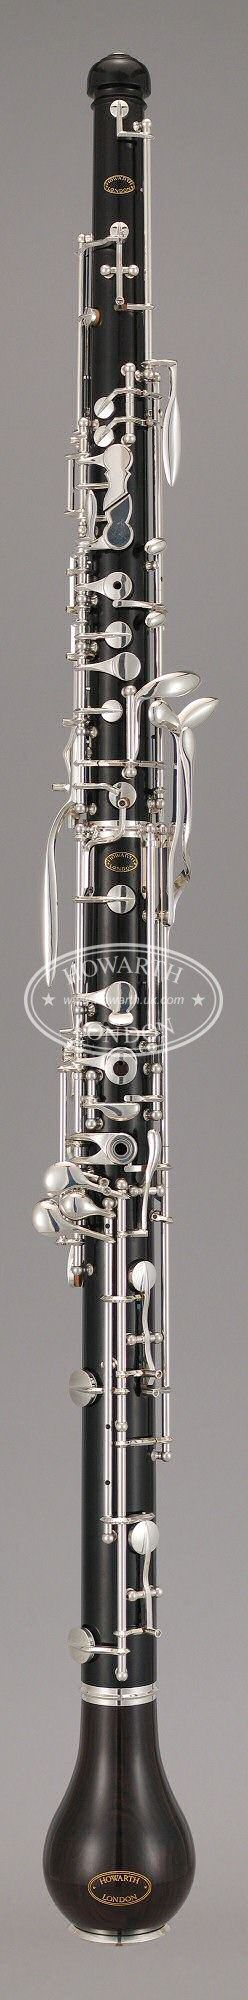 Howarth S5 Conservatoire (French) System Cor Anglais - my new English horn!